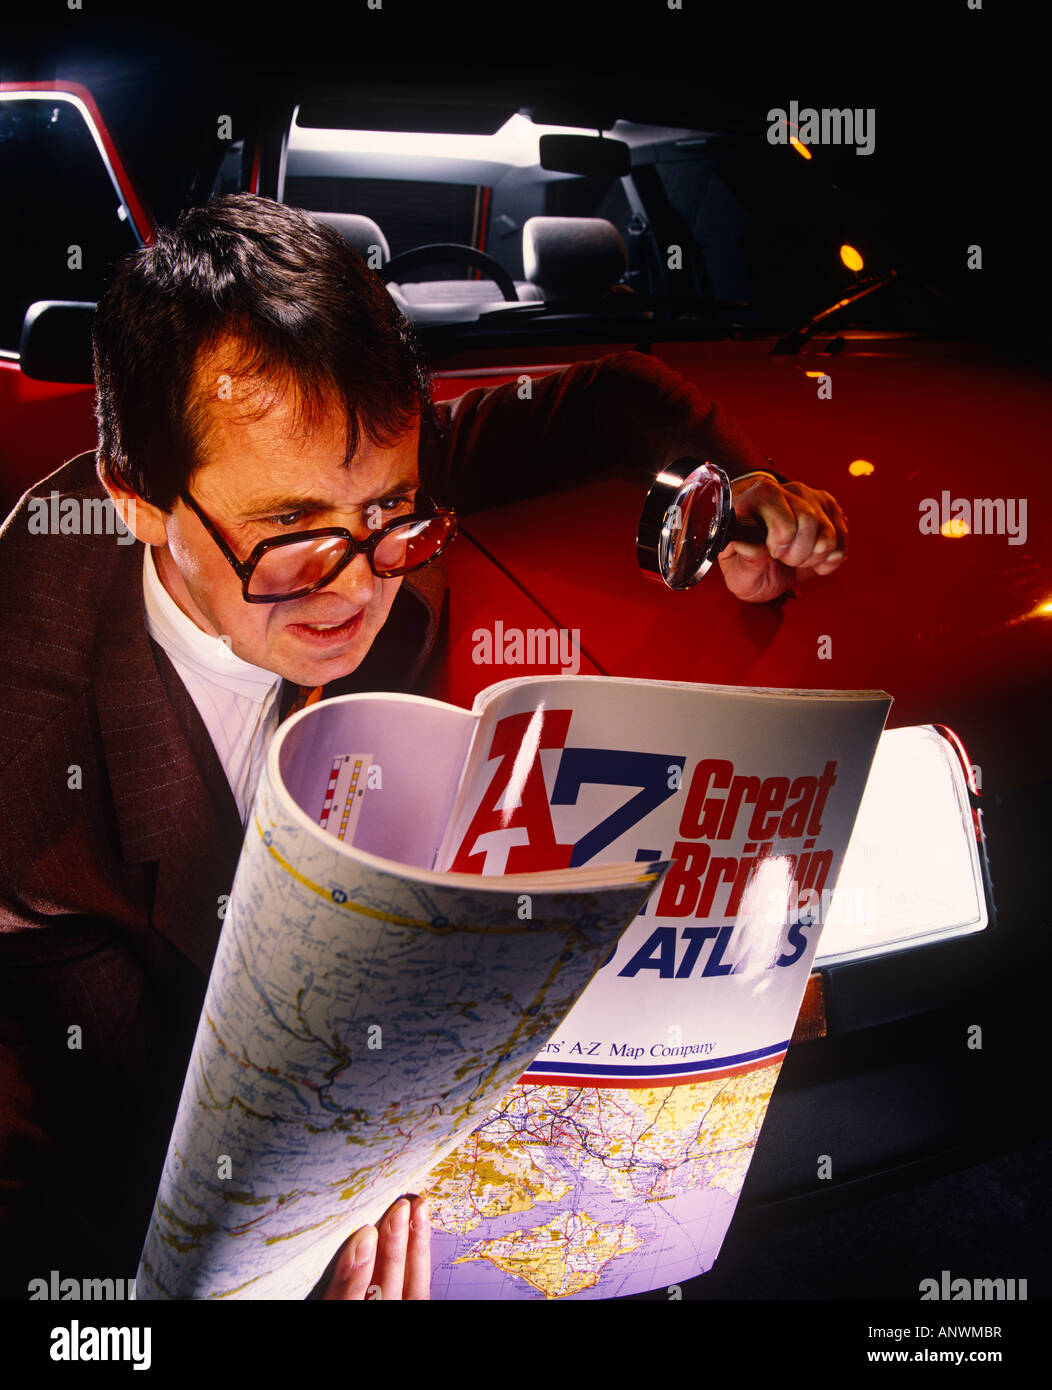 Man lost in the dark as he doesn't have satellite navigation - Stock Image